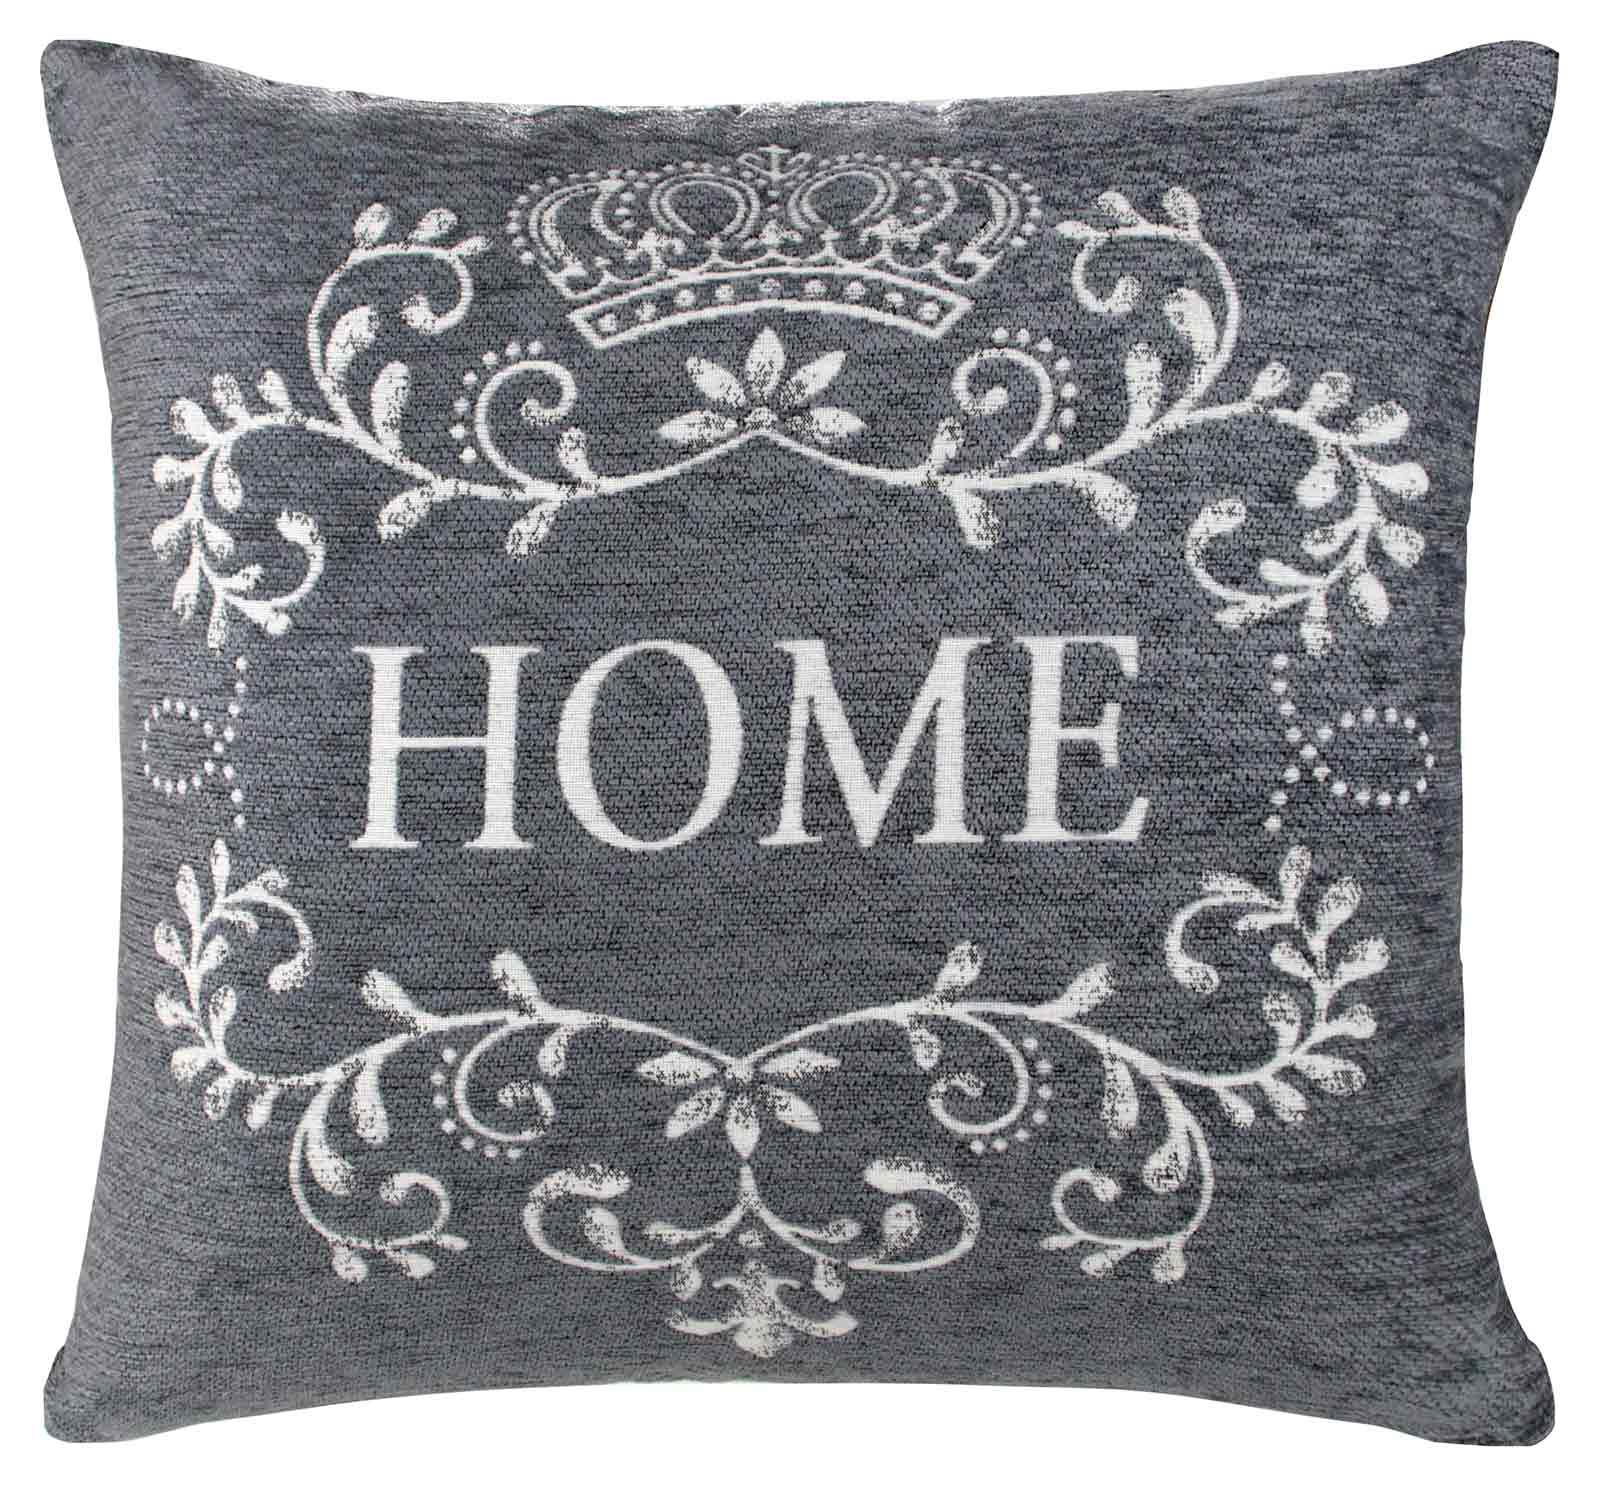 housse de coussin coussins accueil vintage 45cm x 45cm gris noir cr me rouge ebay. Black Bedroom Furniture Sets. Home Design Ideas